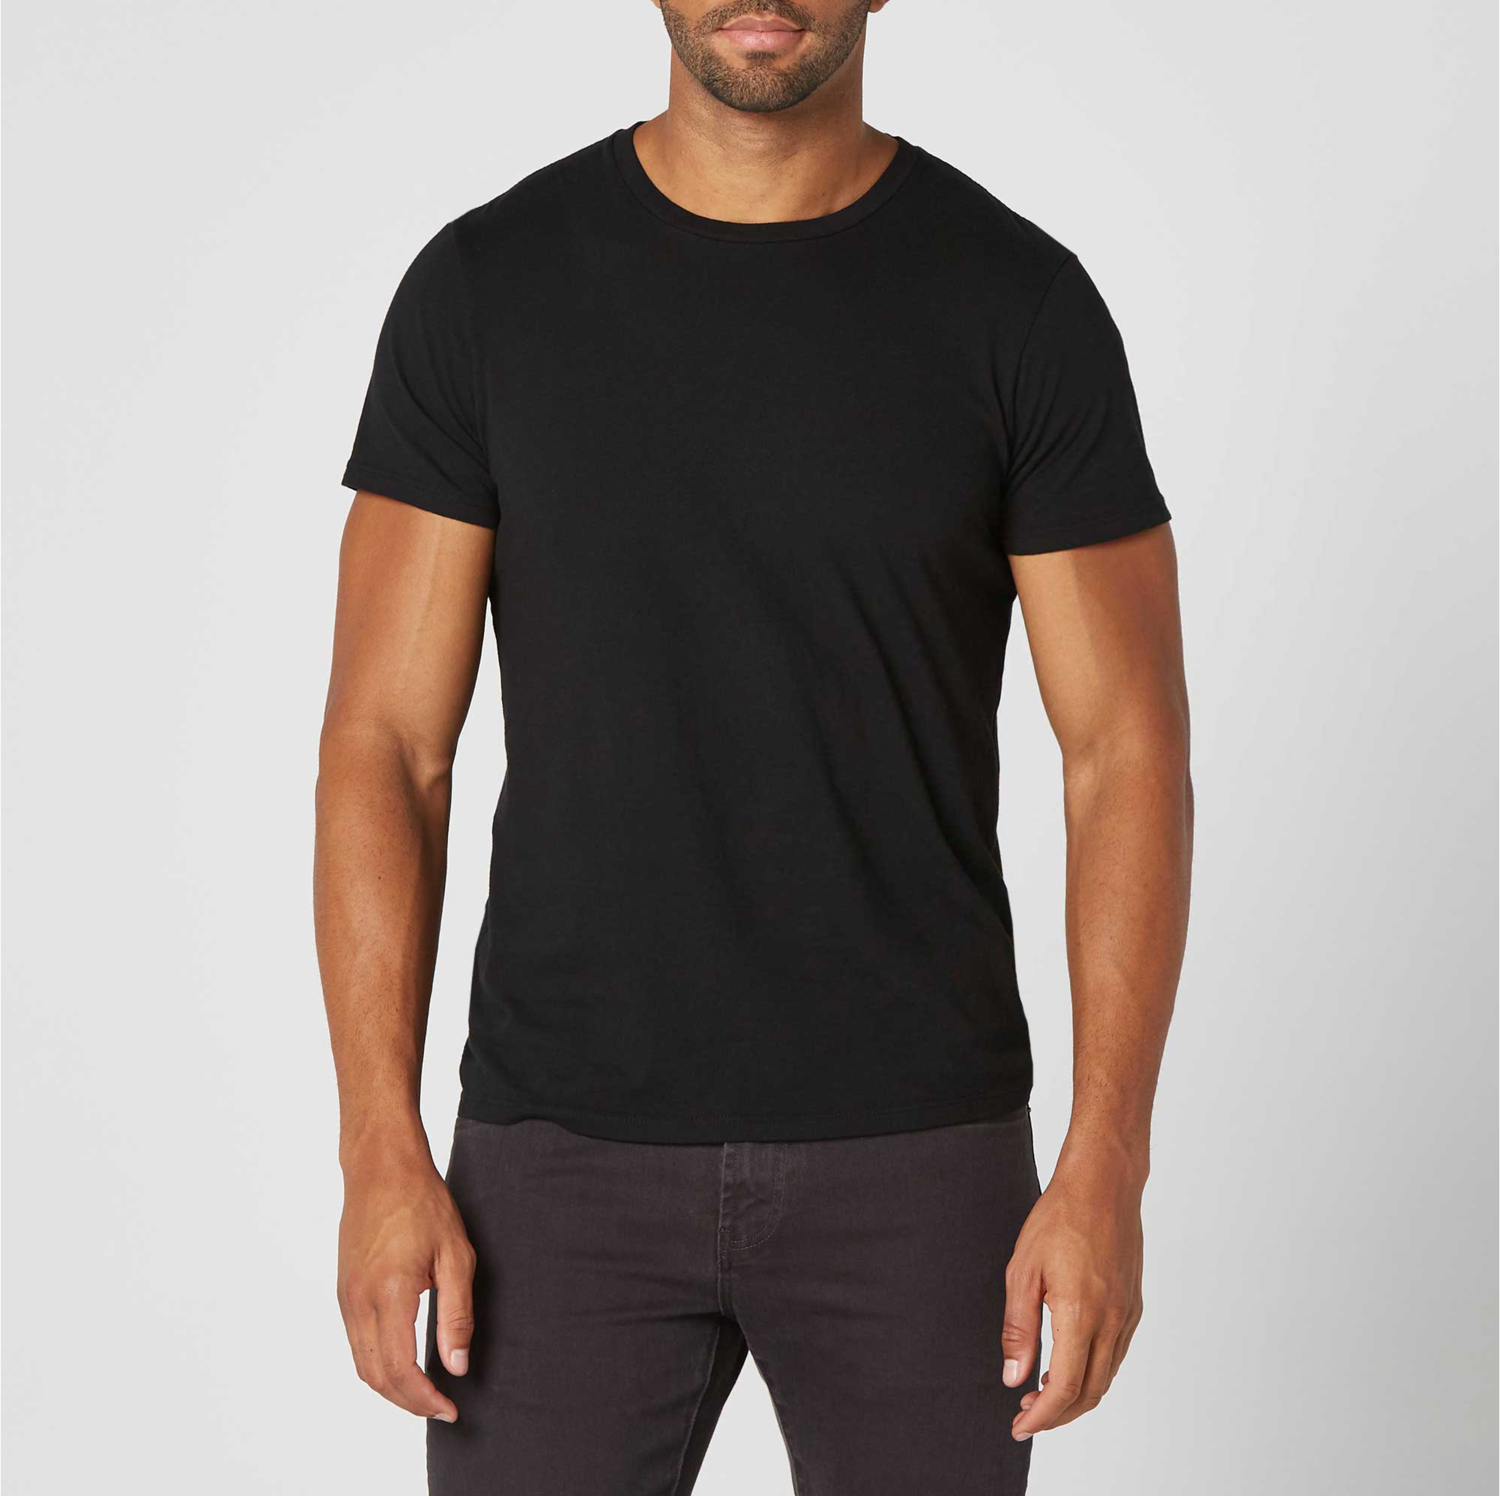 save up to 80% hot sale various kinds of Mens Crew Neck Tee in Black